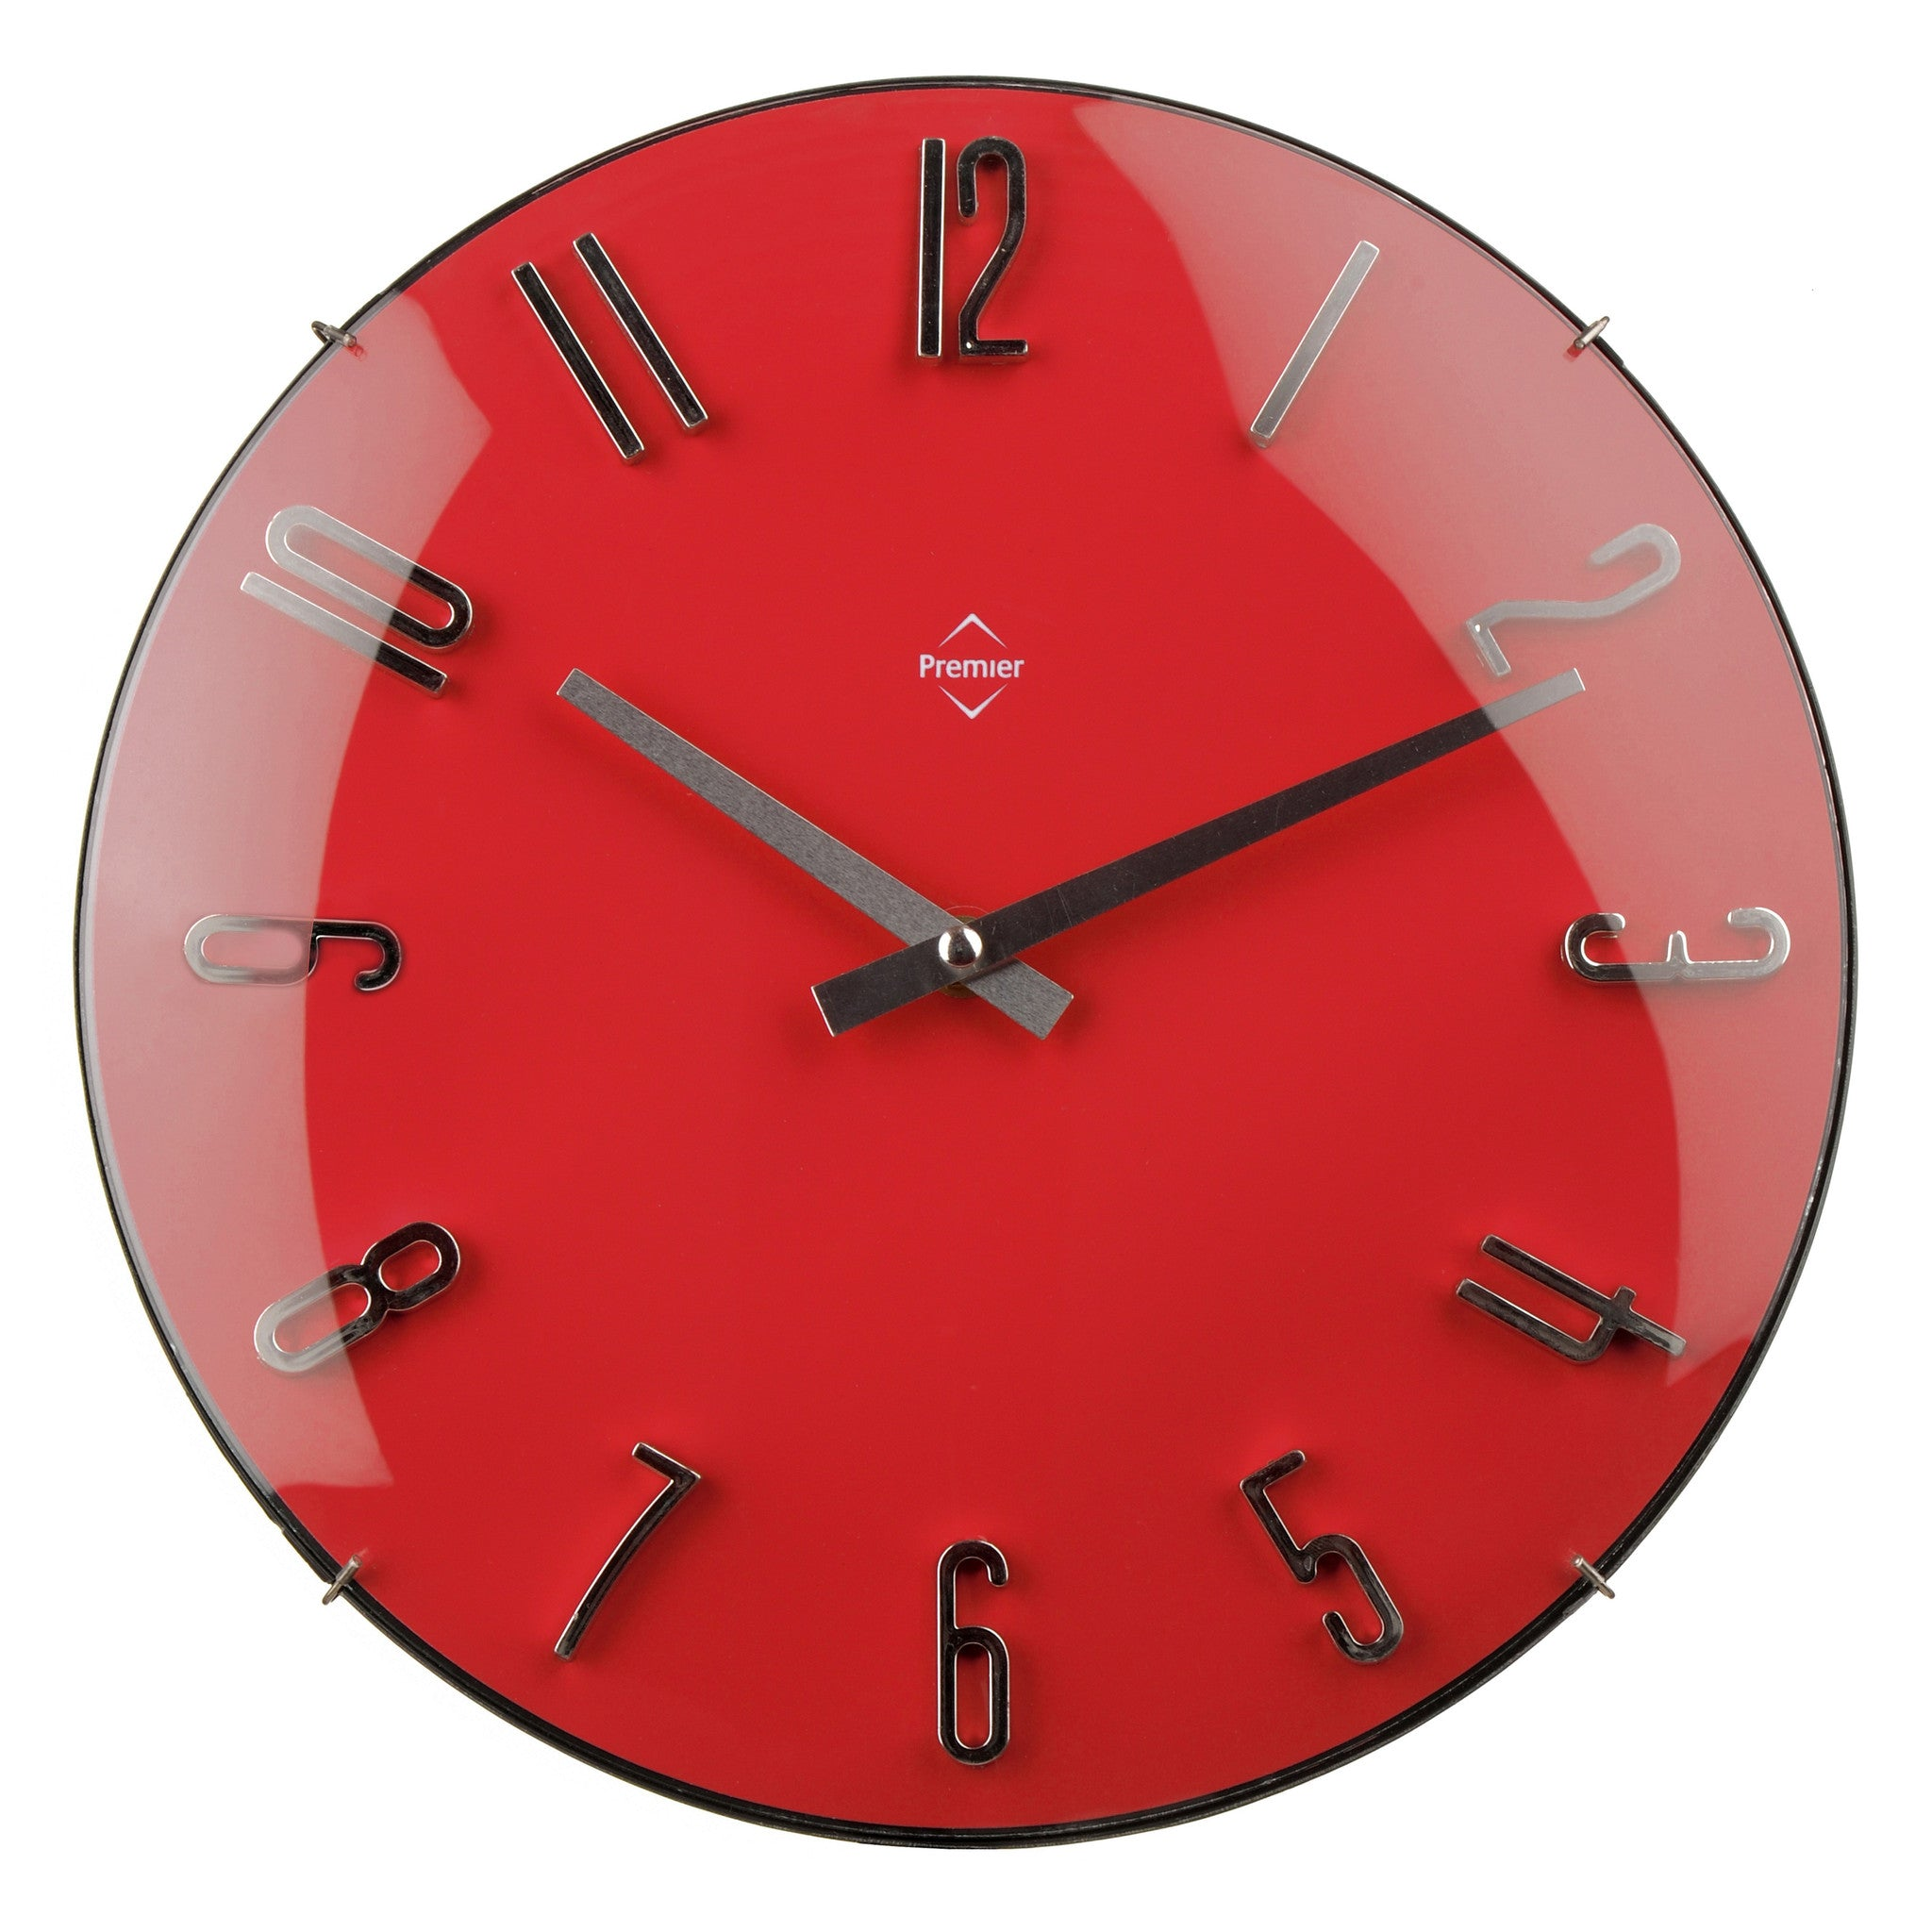 Premier 30.5 Diameter Wall Clock - Homely Nigeria - 2